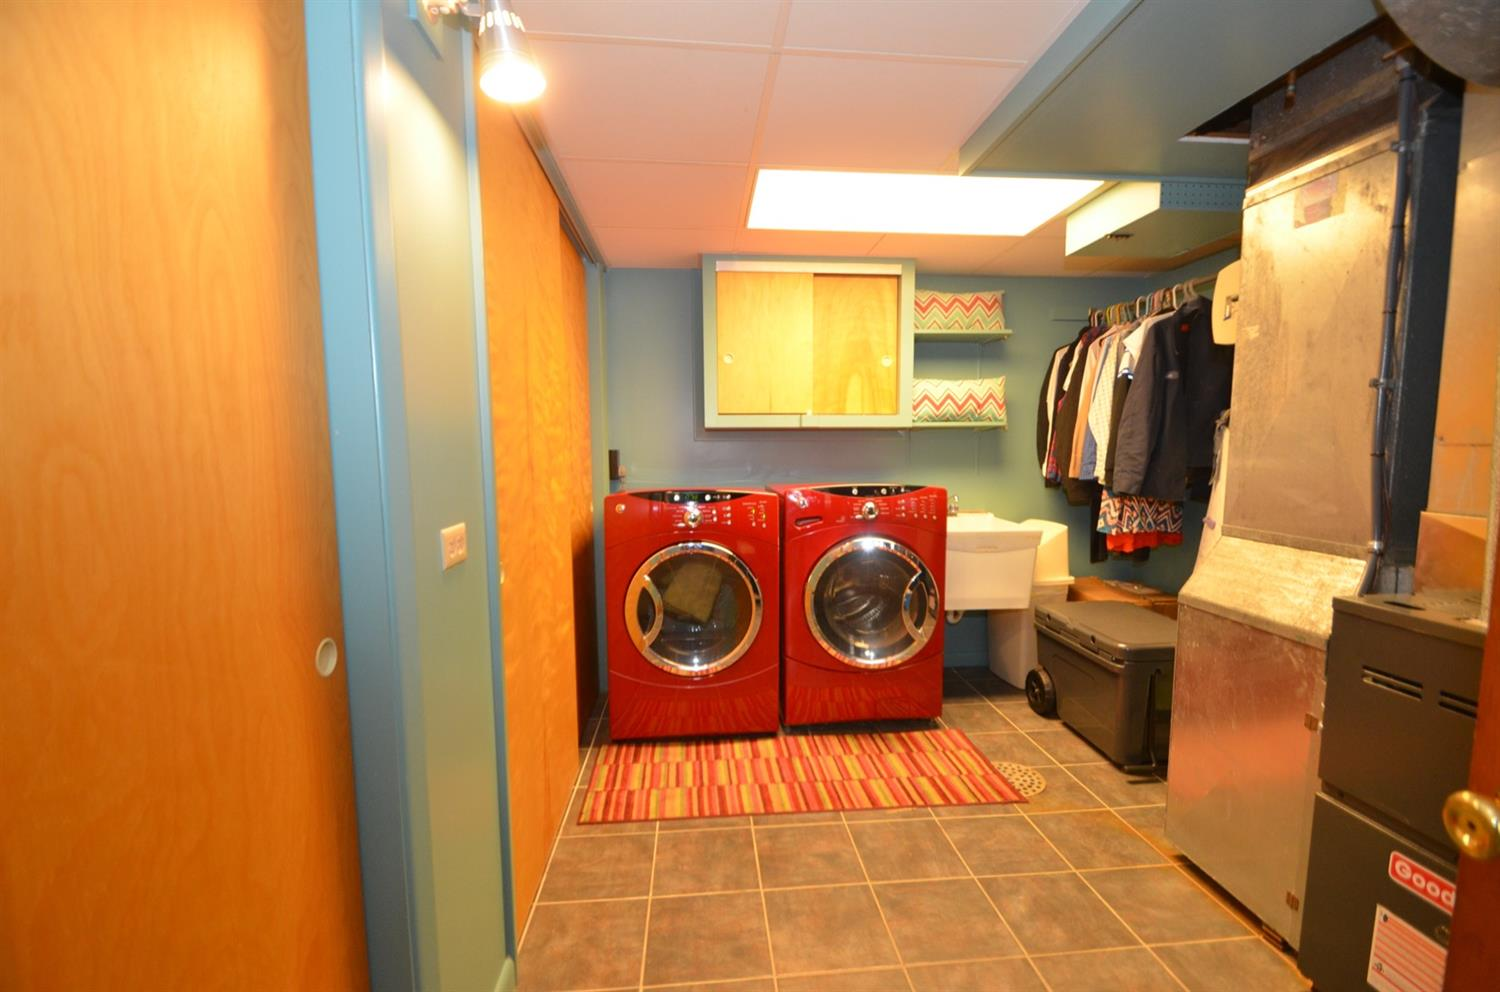 Fabulous laundry room with LARGE CLOSETS, wash tub, and more storage!  Washer and Dryer included!